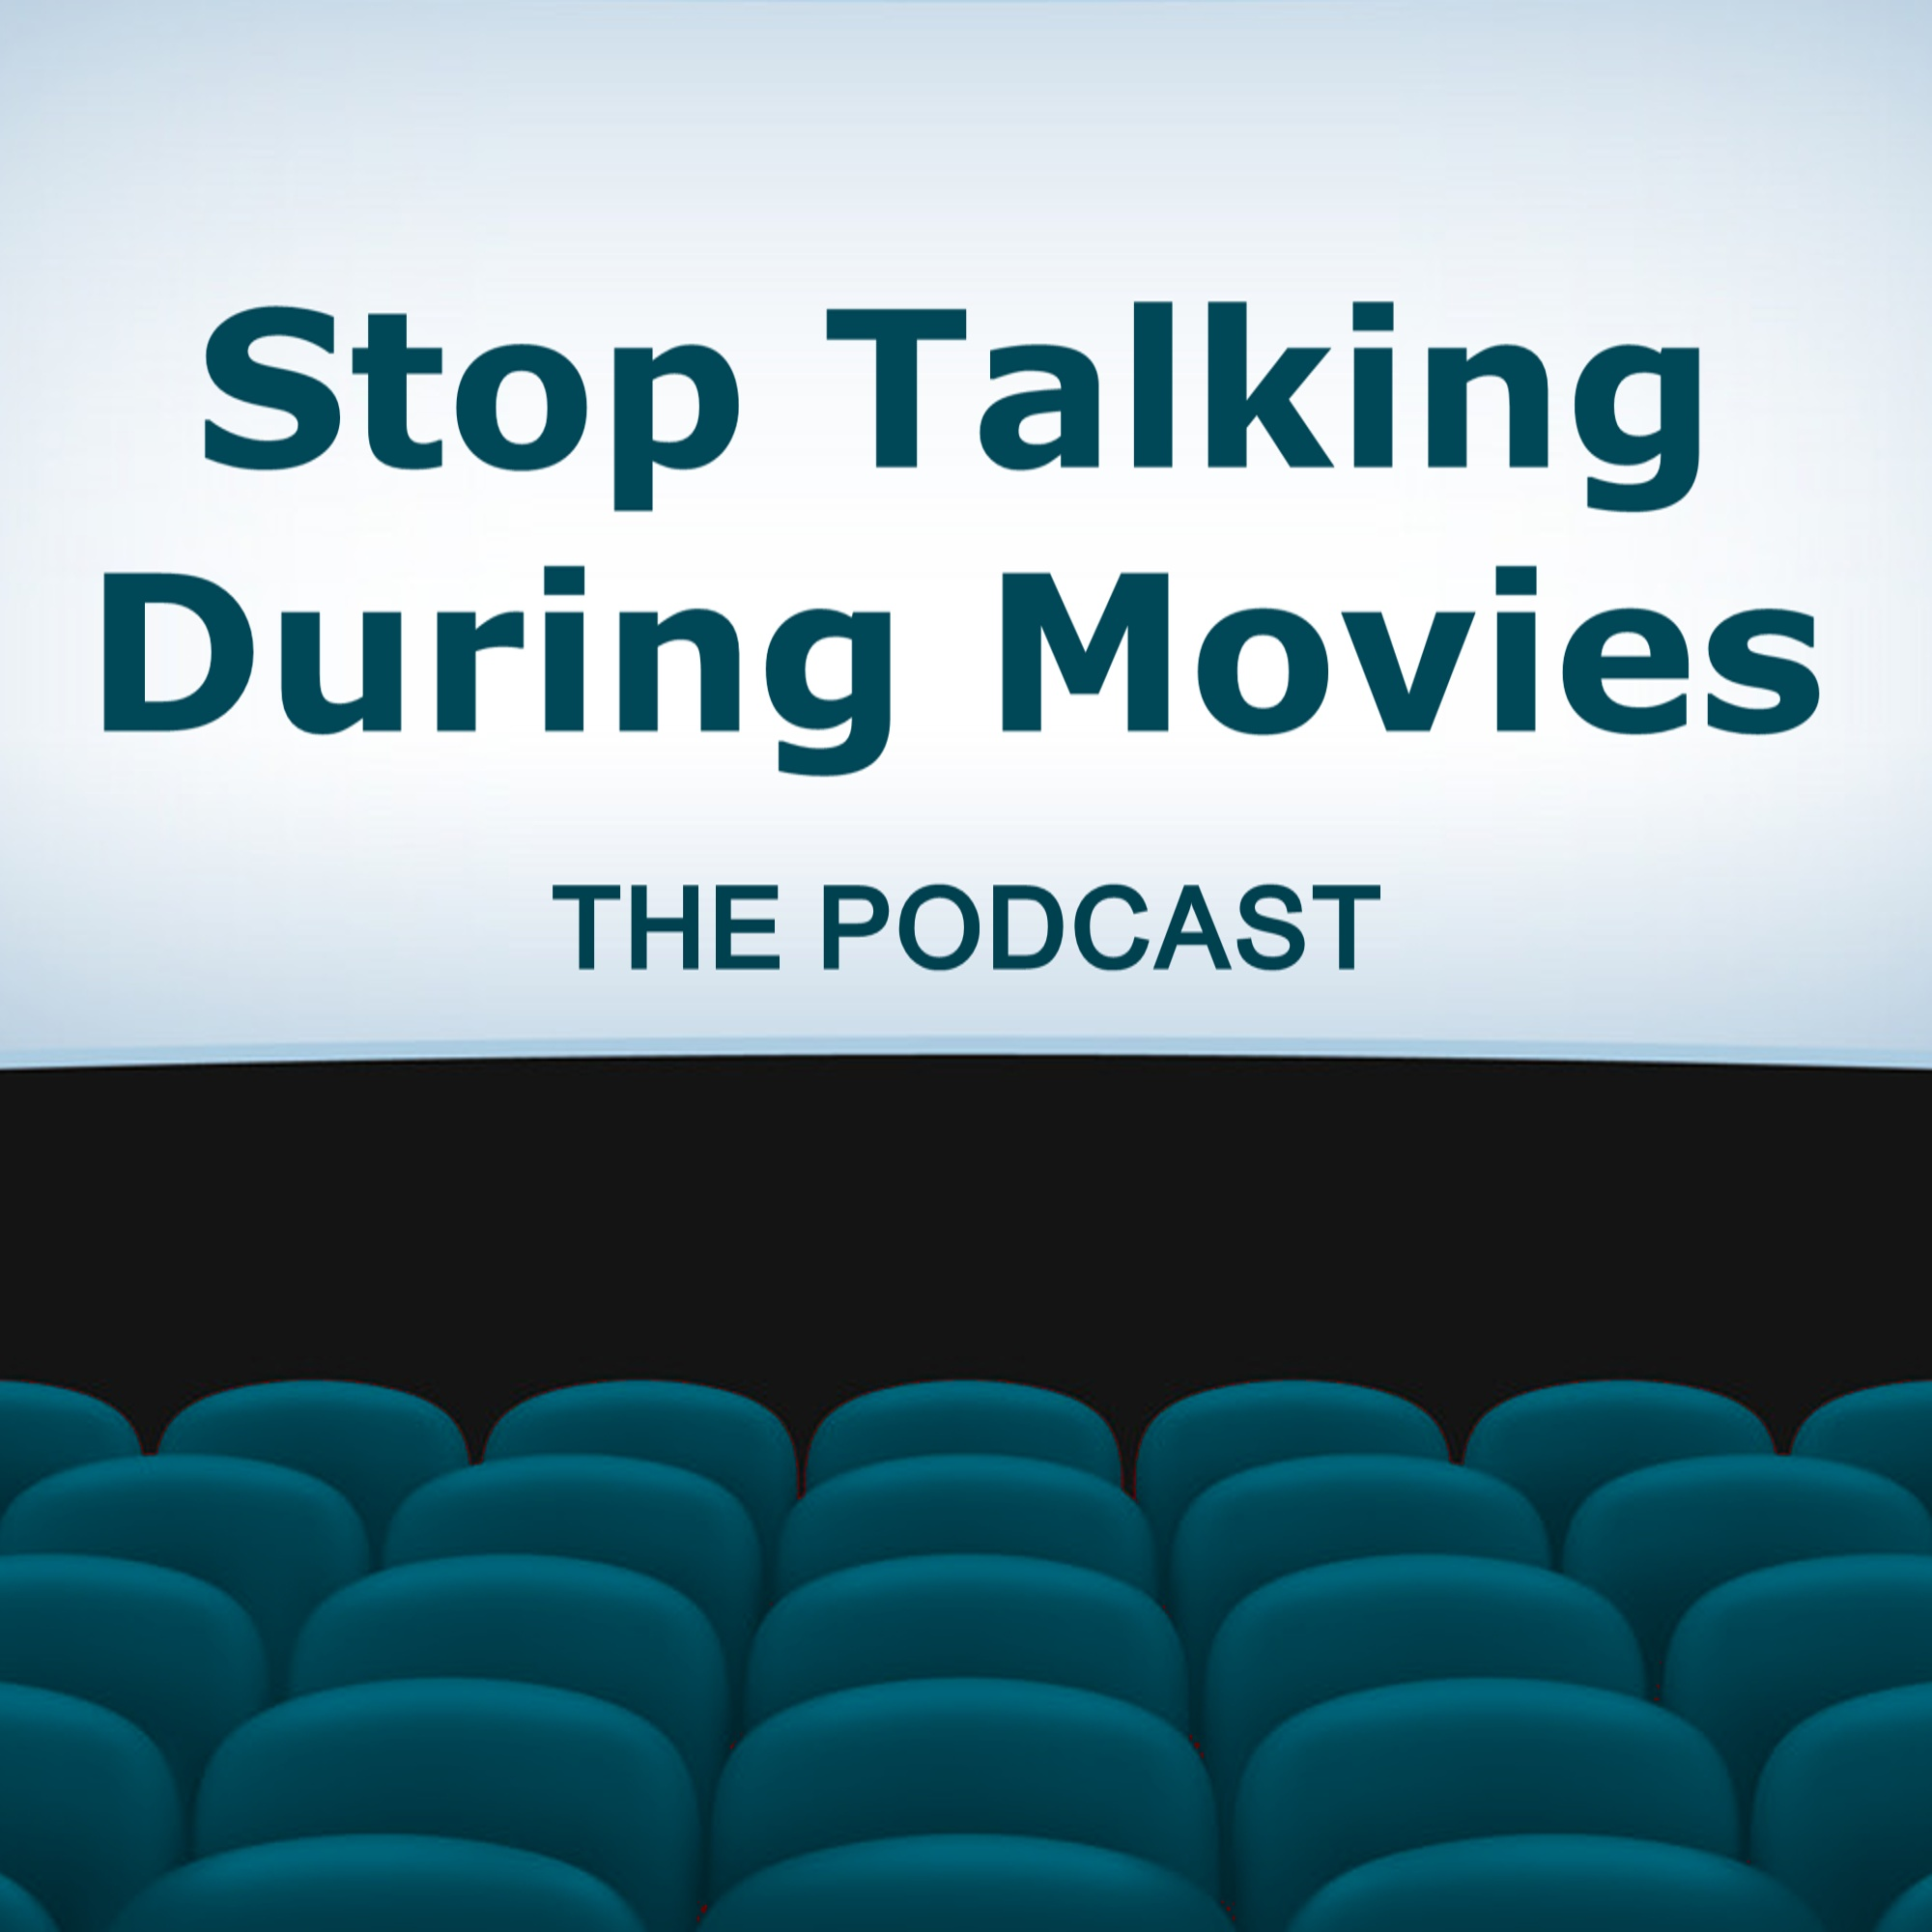 Stop Talking During Movies